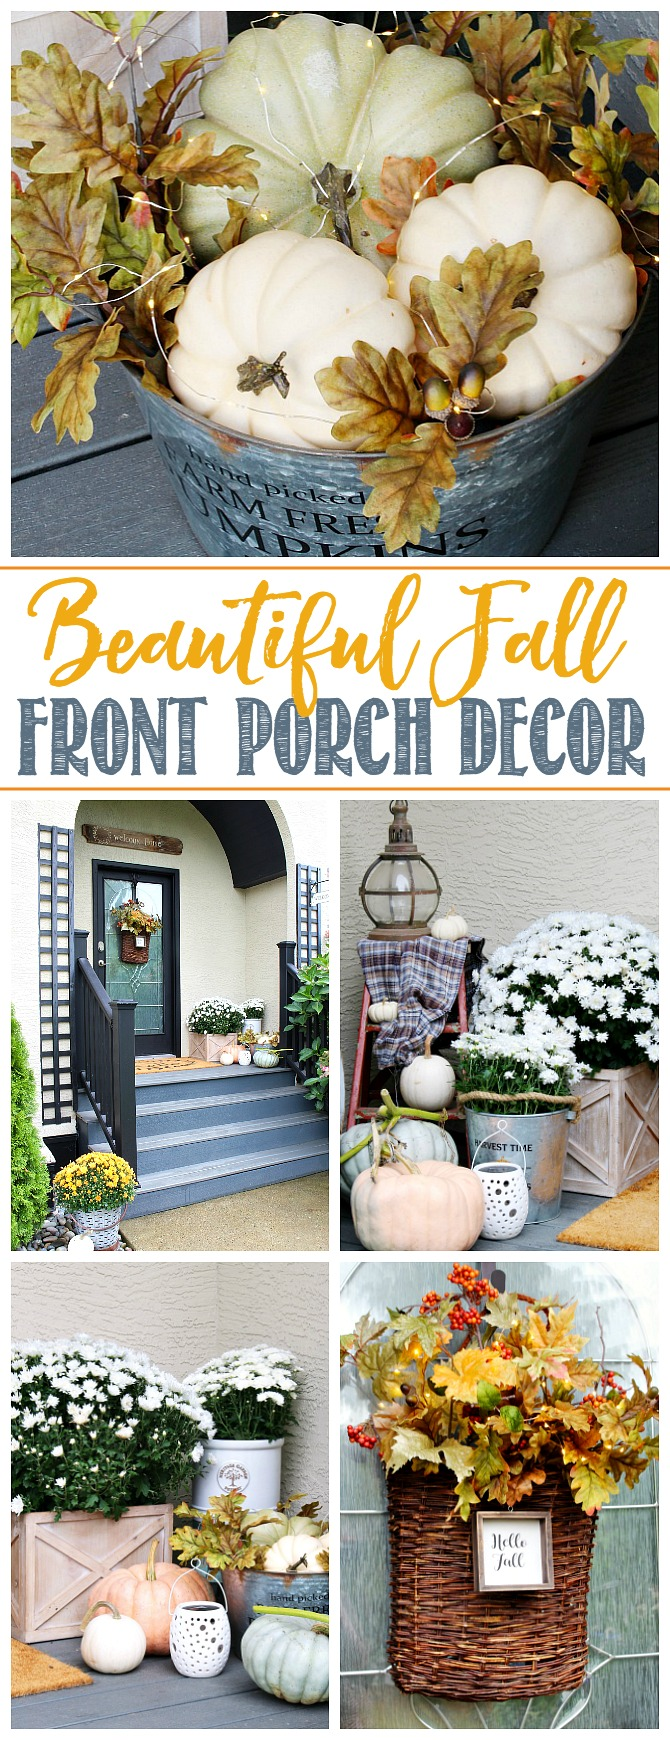 Collage of beautiful fall front porch decor ideas.